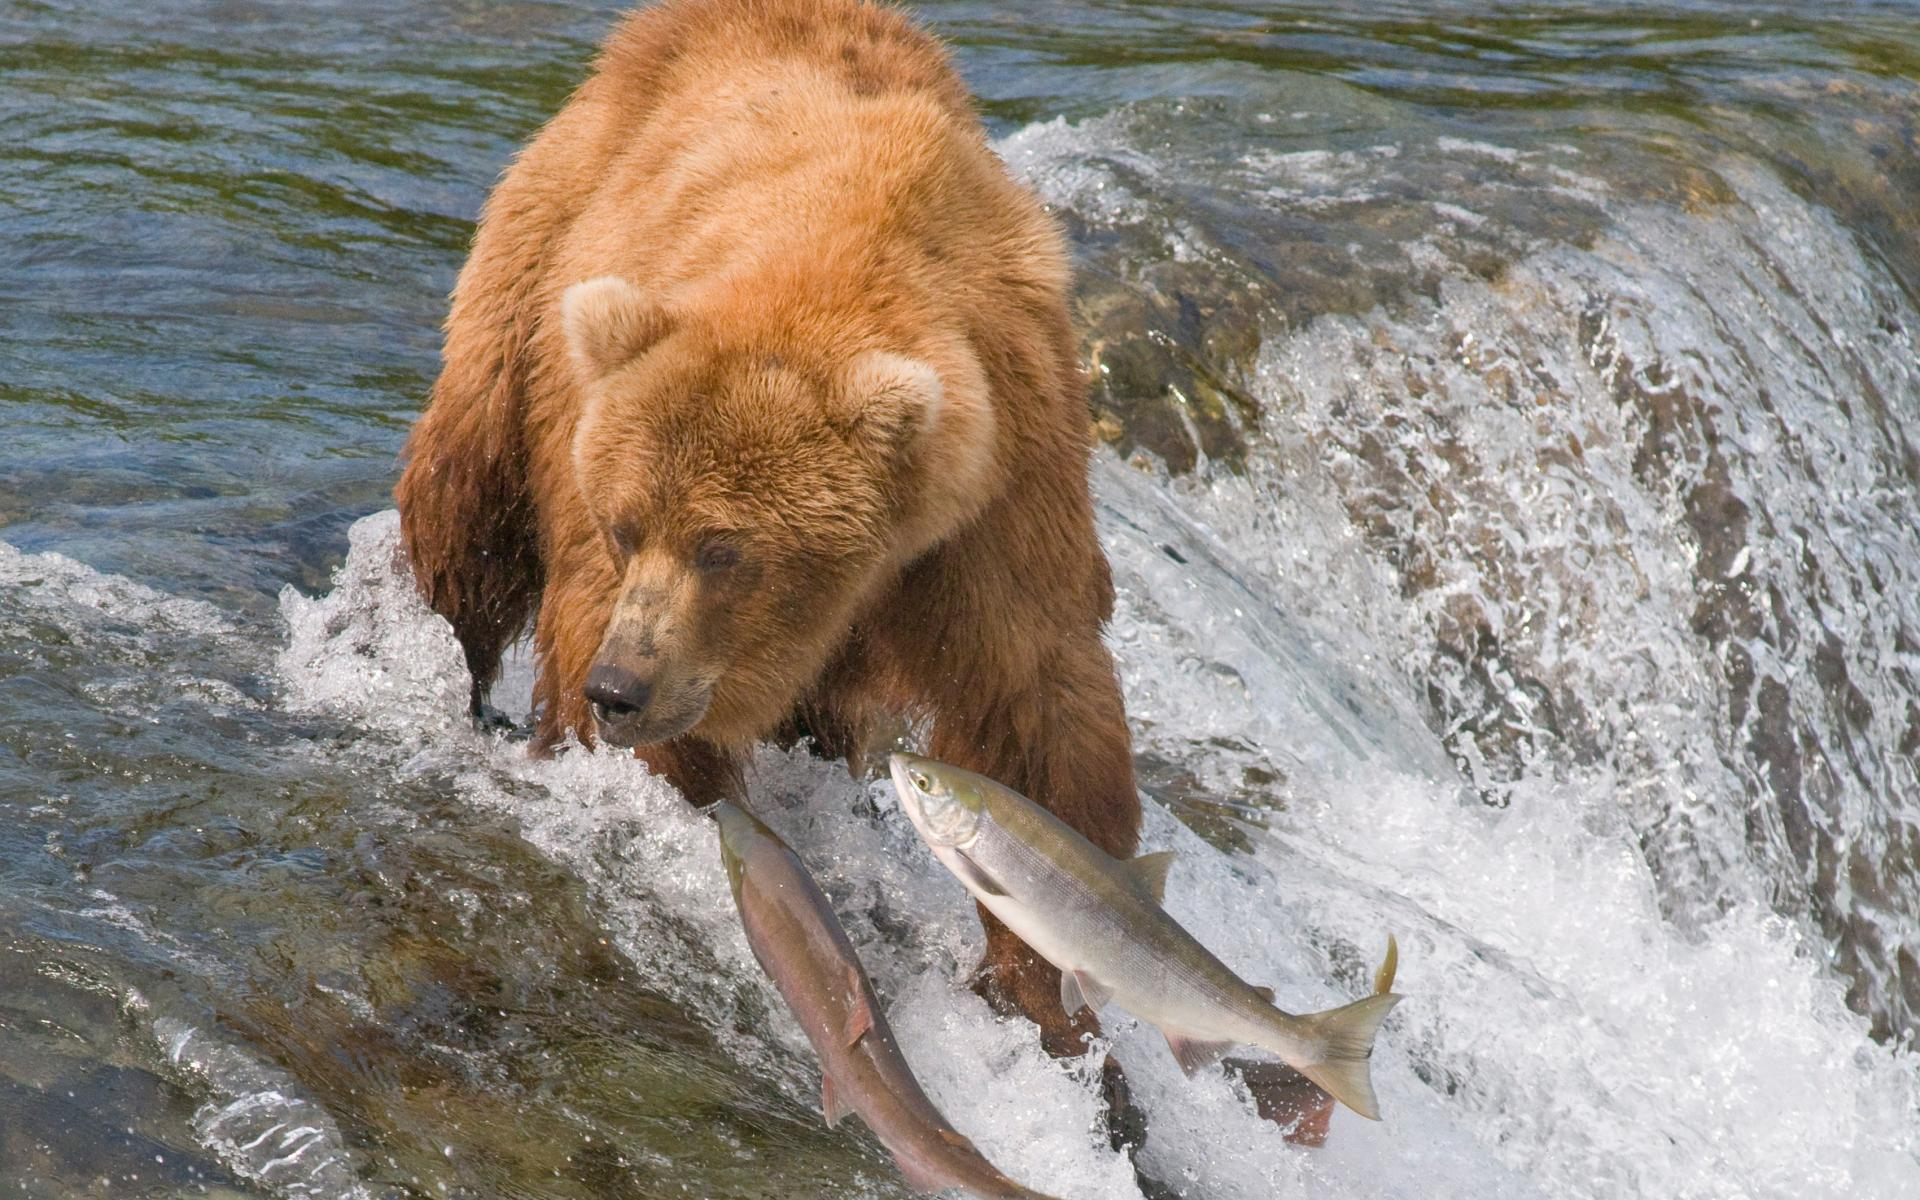 Grizzly bears salmon predator fishes wildlife nature waterfall